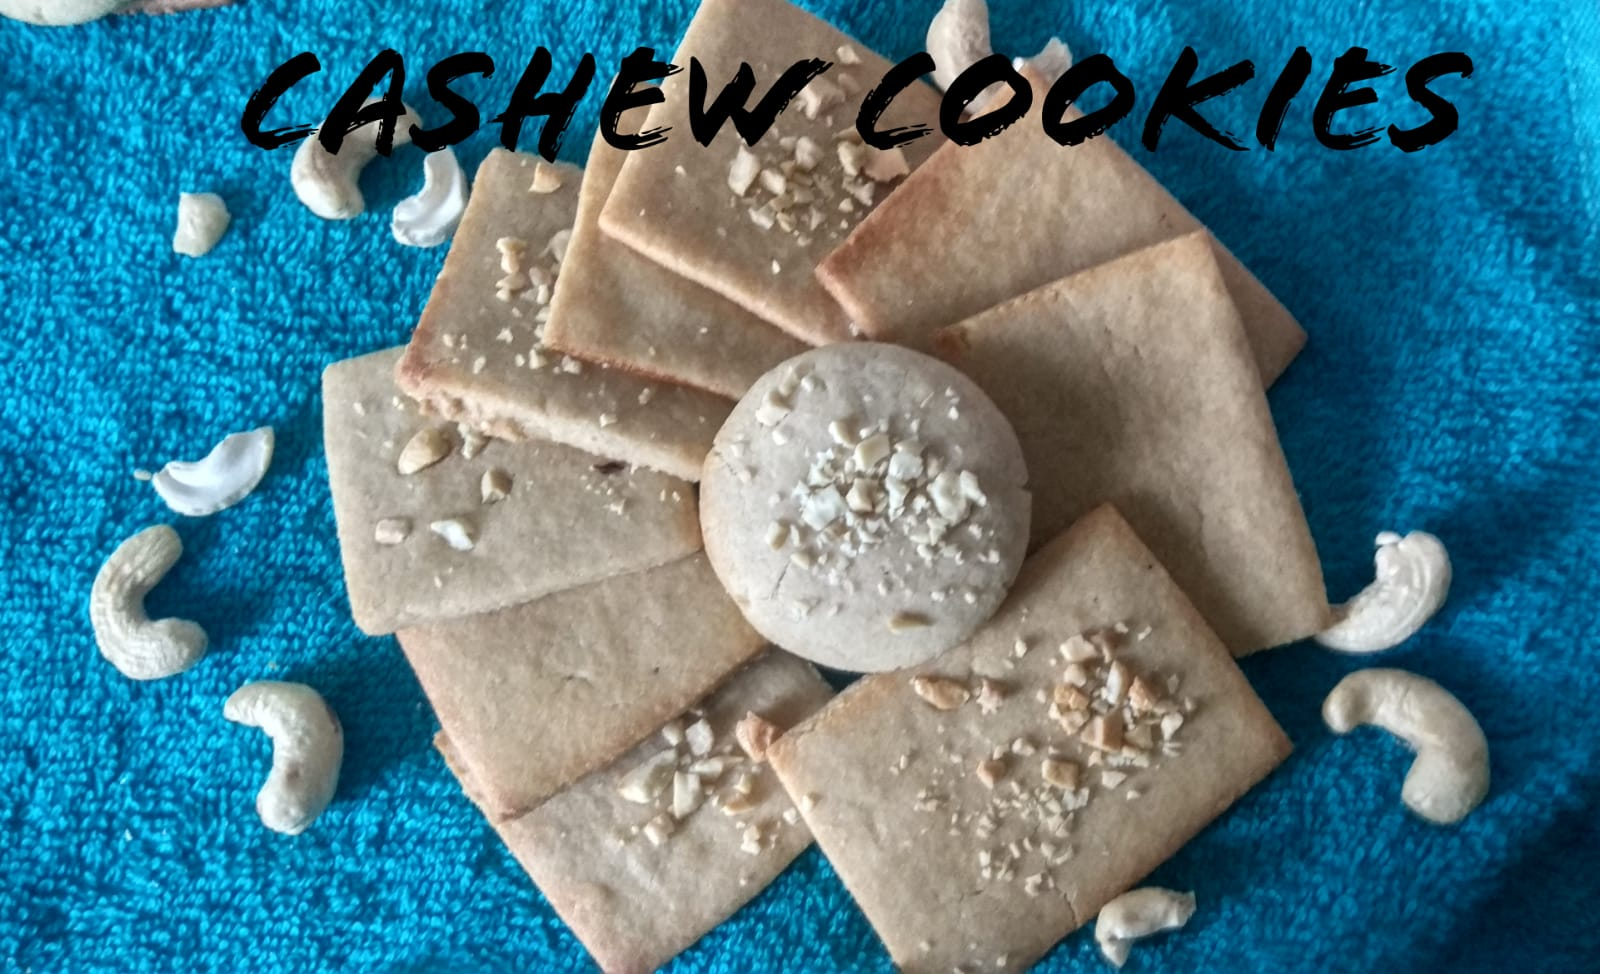 Cashew Cookies | Cashew butter biscuits